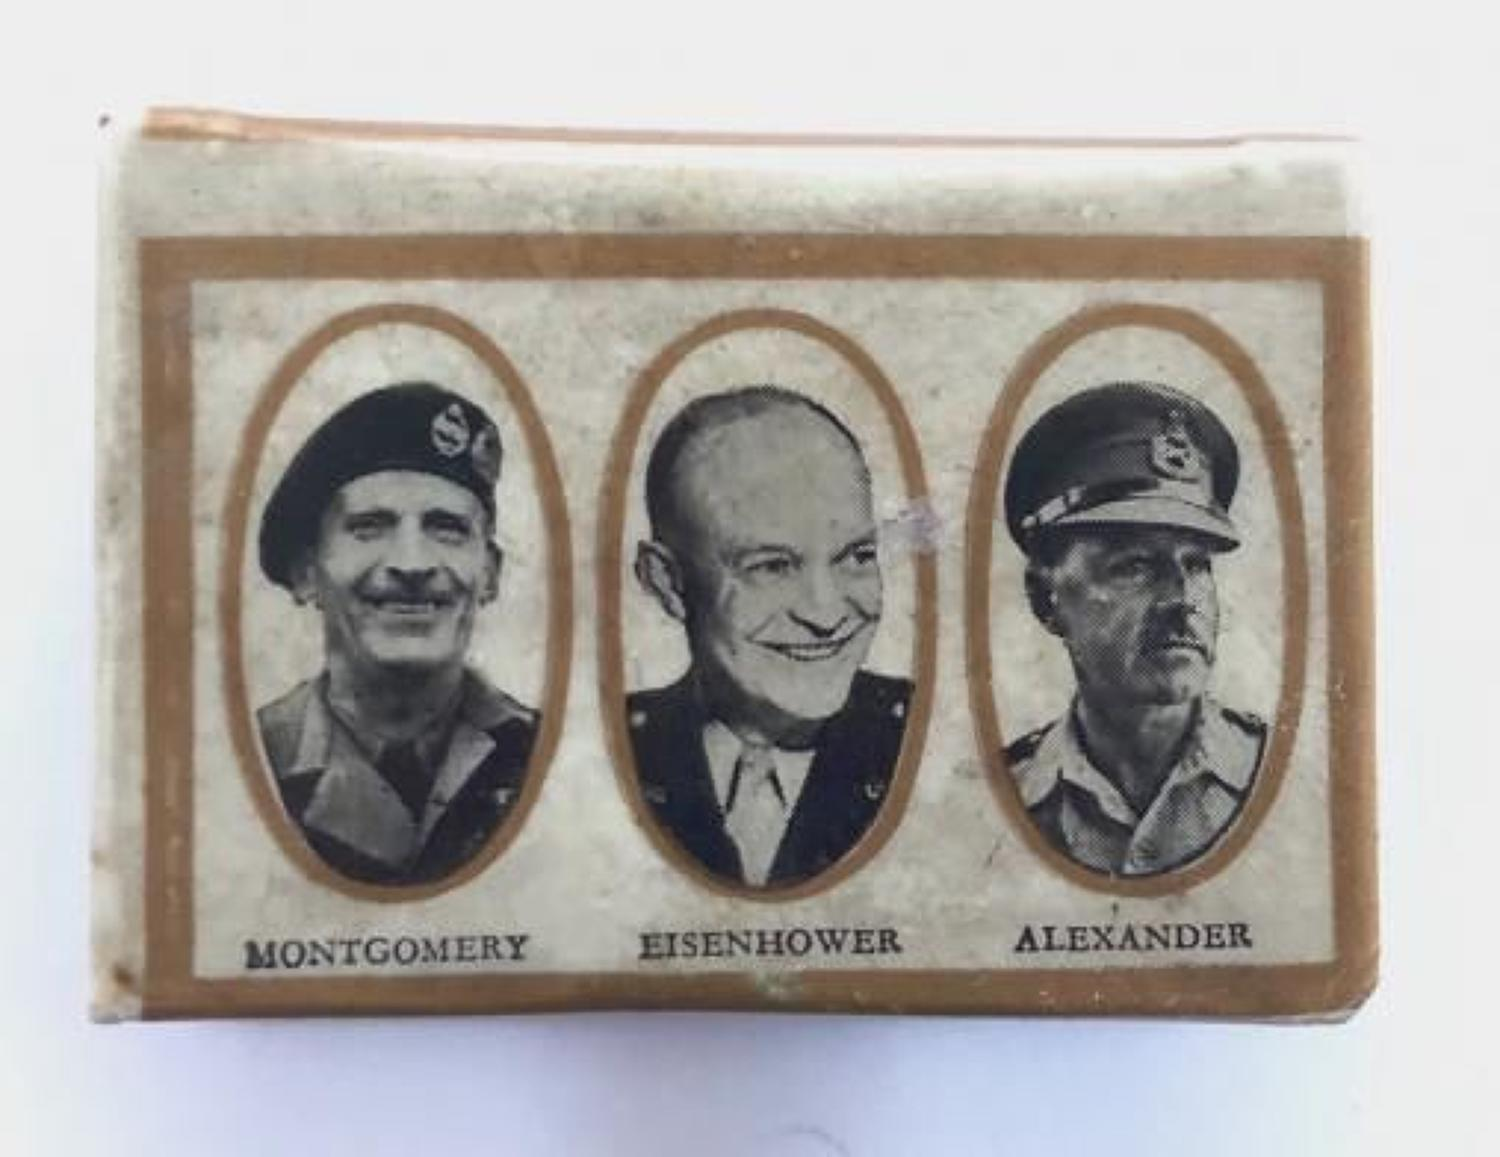 WW2 Celluloid Patriotic Allied Leaders Match Box Cover.